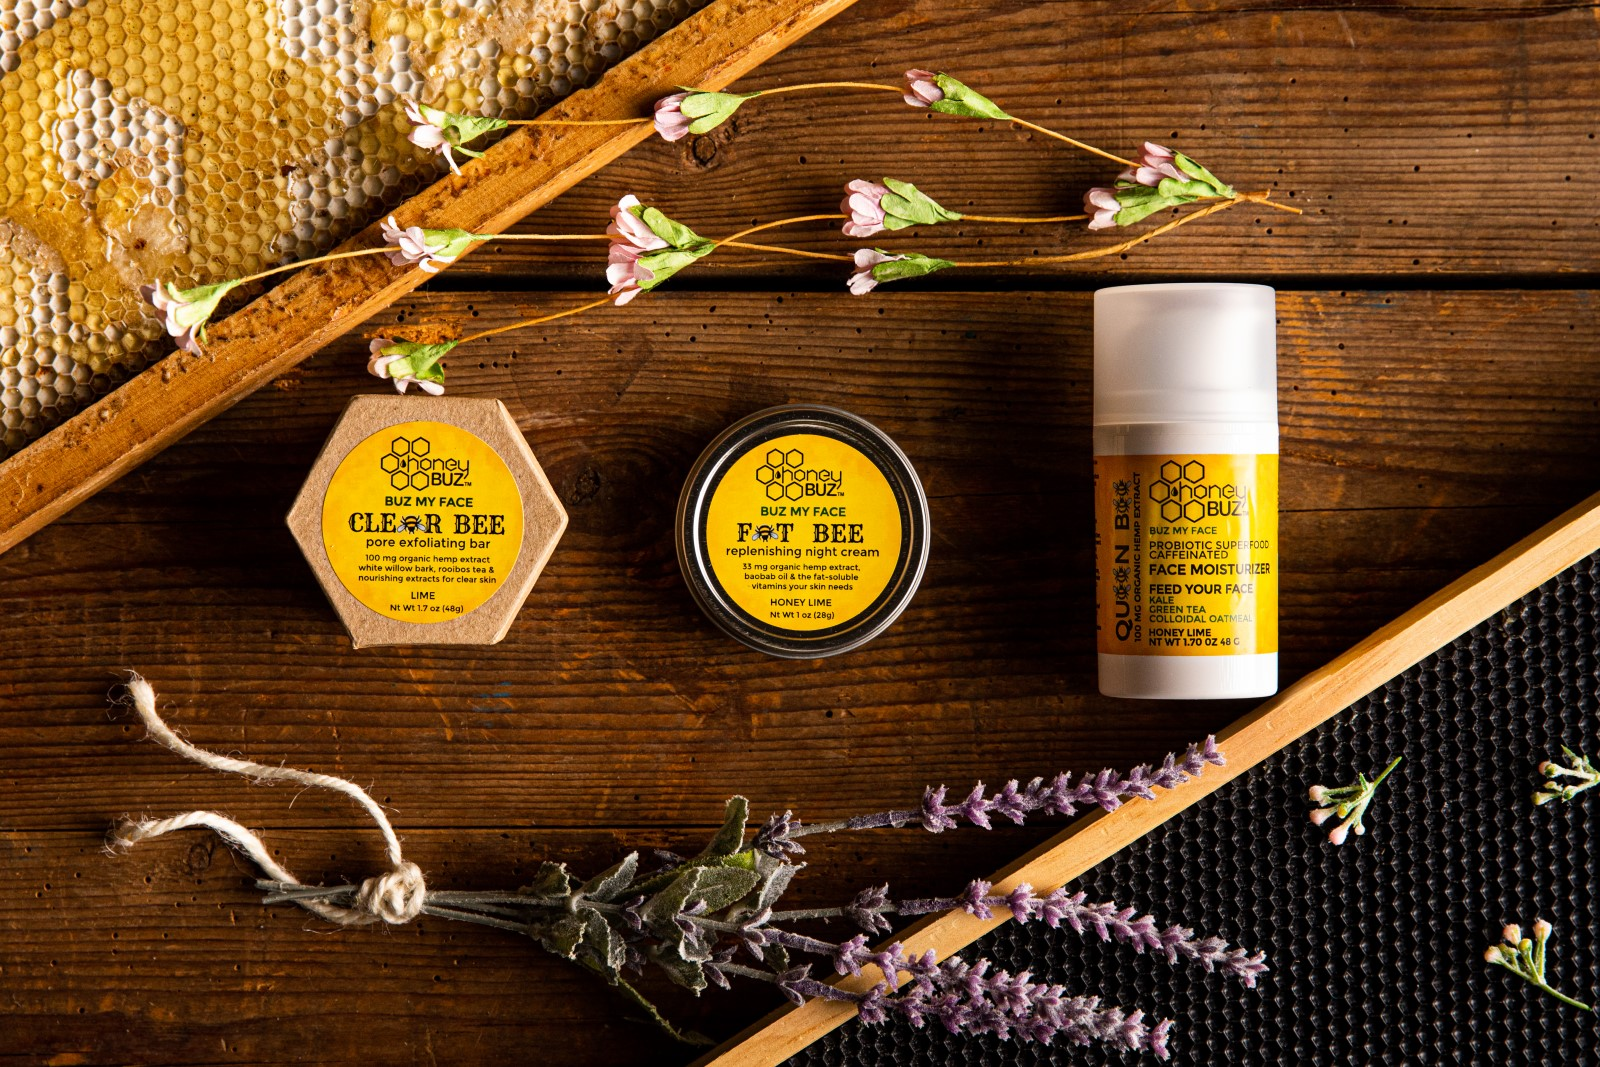 """Honey Buz Releases """"Buz Your Face""""; All Natural Skin Care Line, Salon Crafted """"True Face Care"""" for Your Skin Regime"""